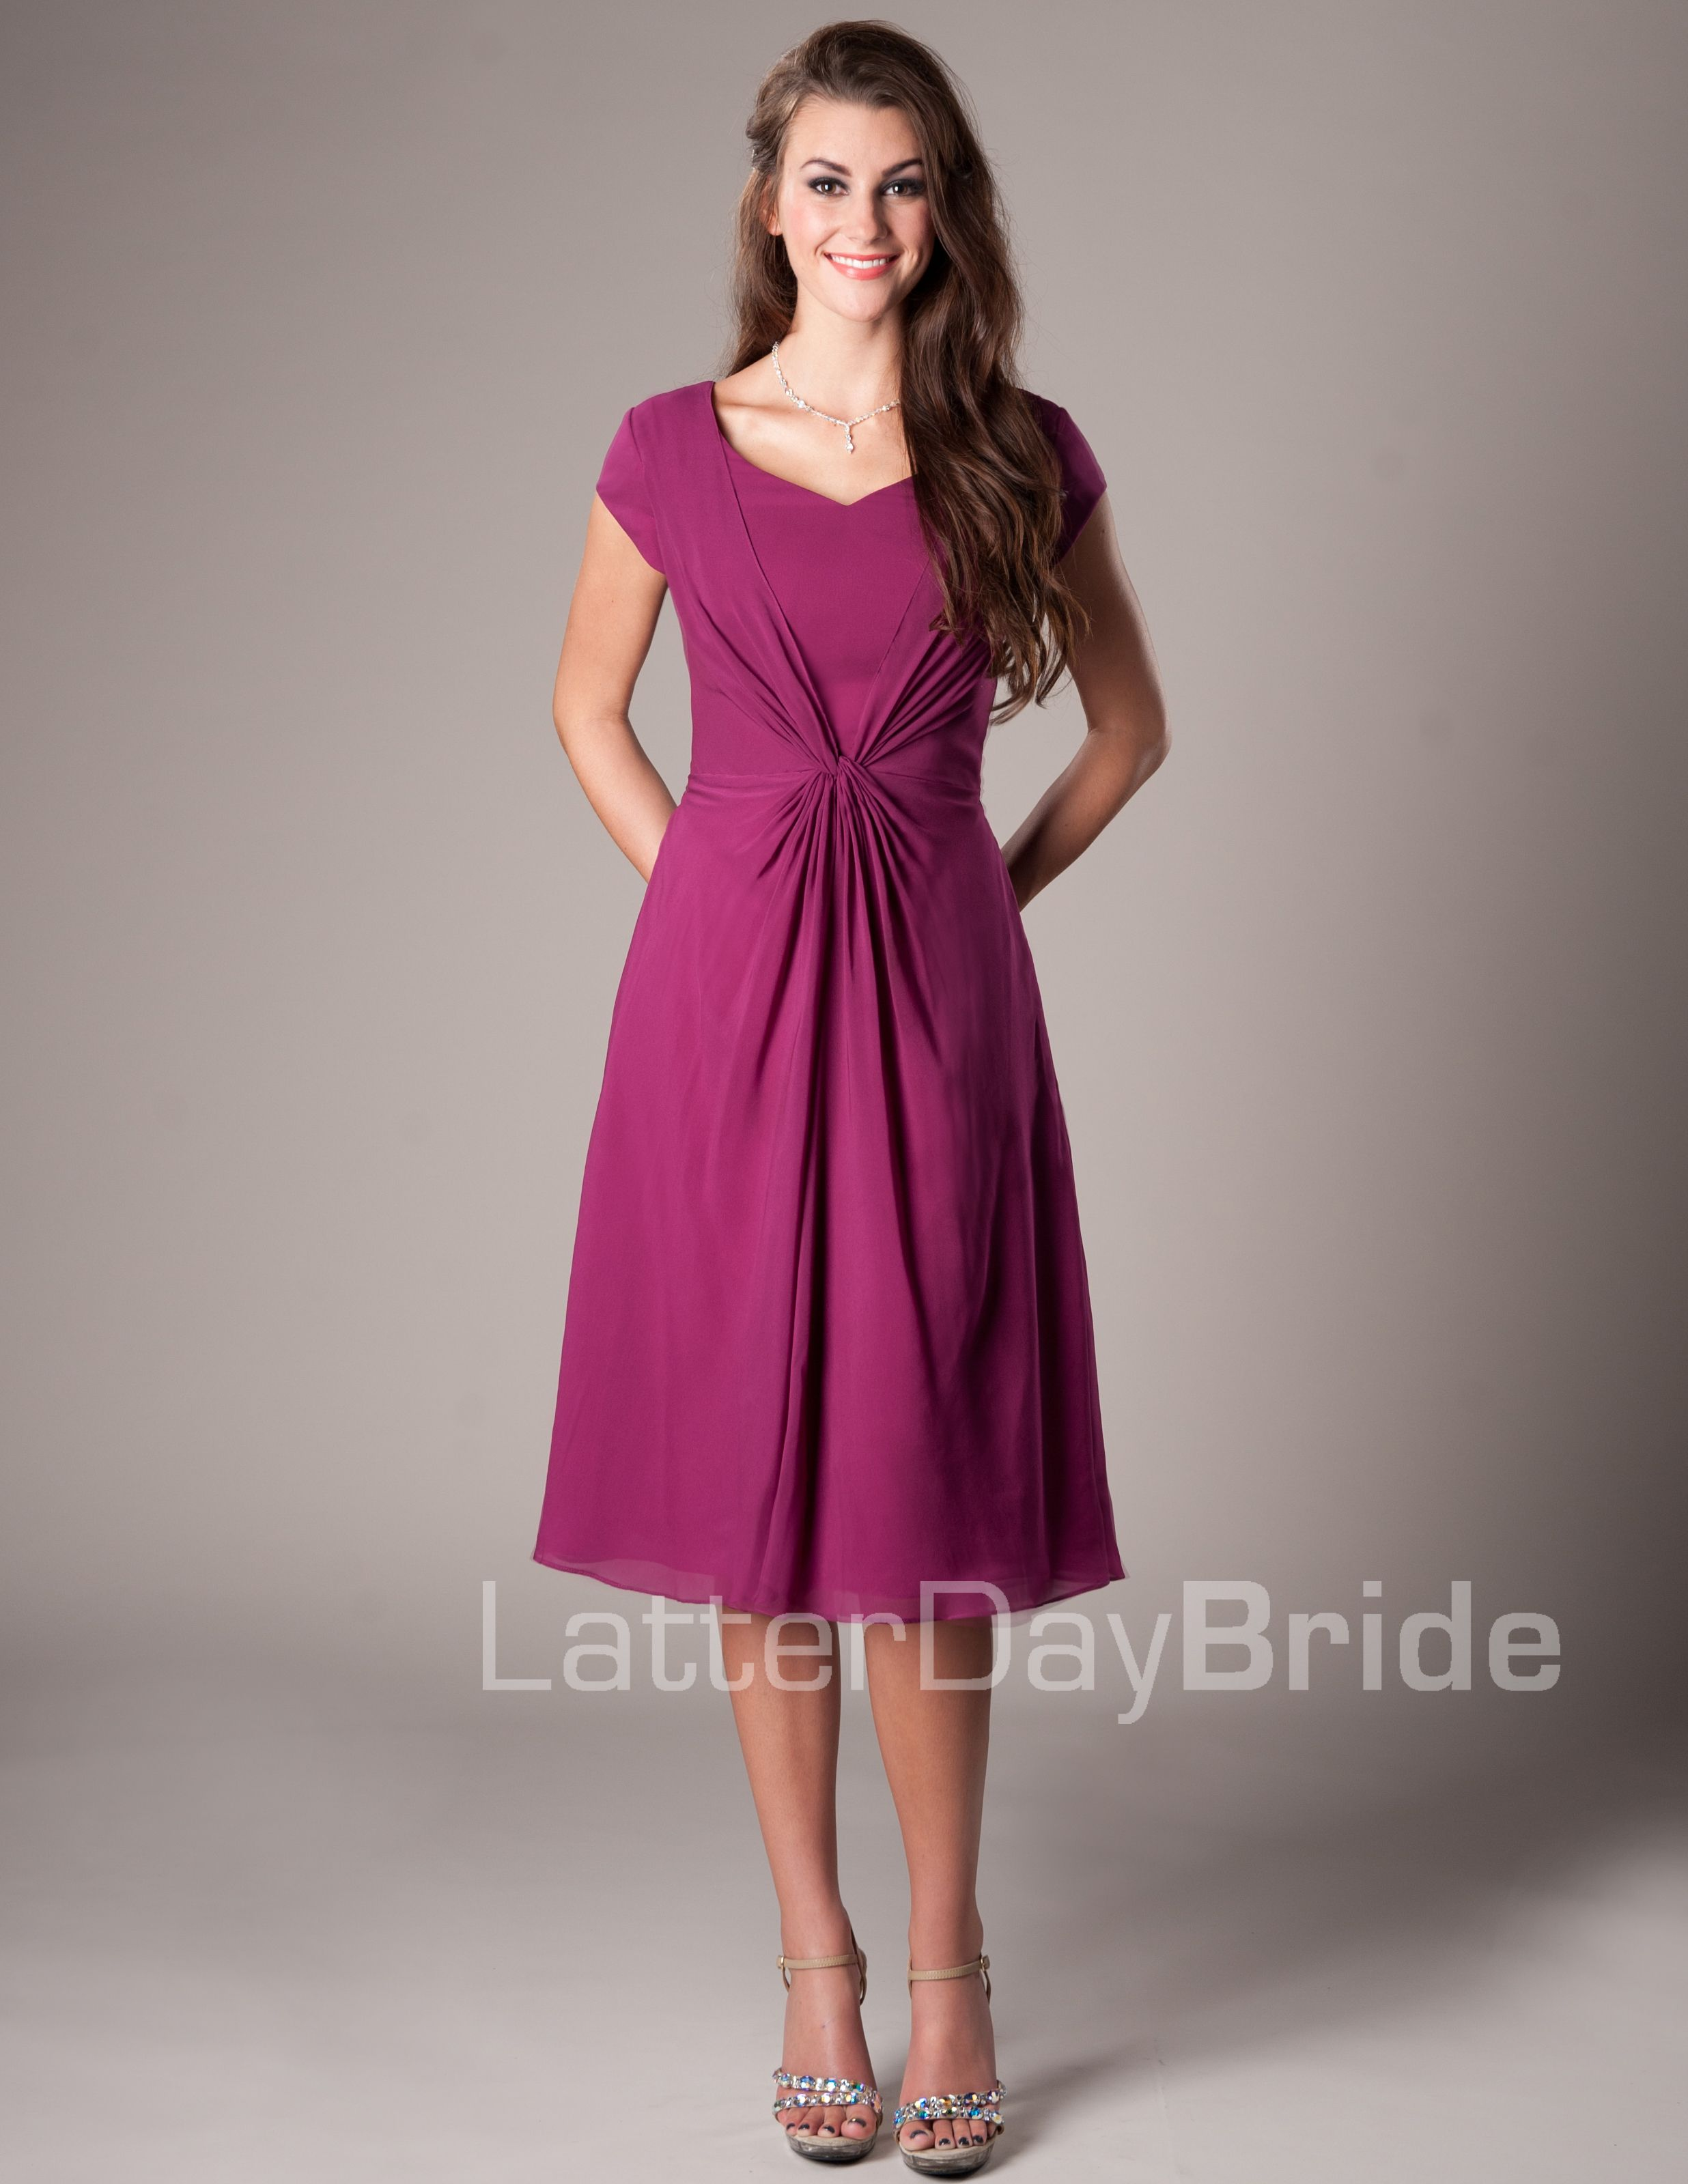 Devon Modest Mormon LDS Bridesmaid Dress | Vestidos de Dama de Honor ...